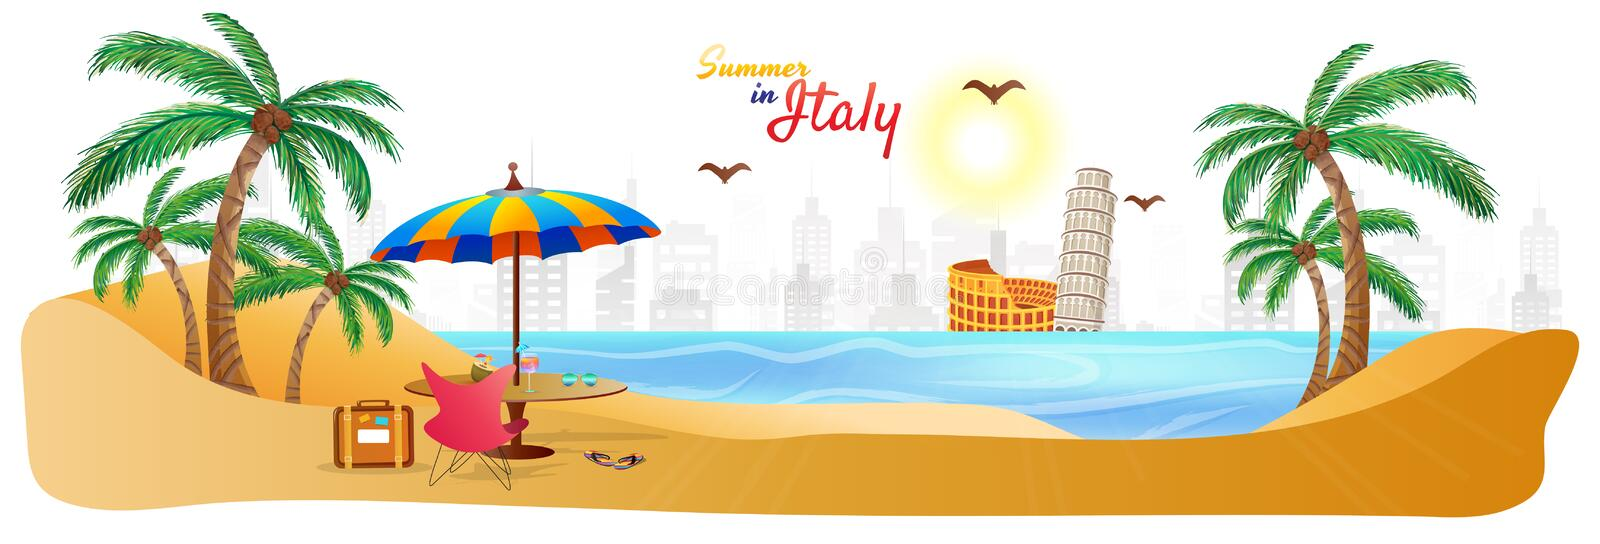 Summer in Italy web header or banner with stylish text travel ba royalty free illustration